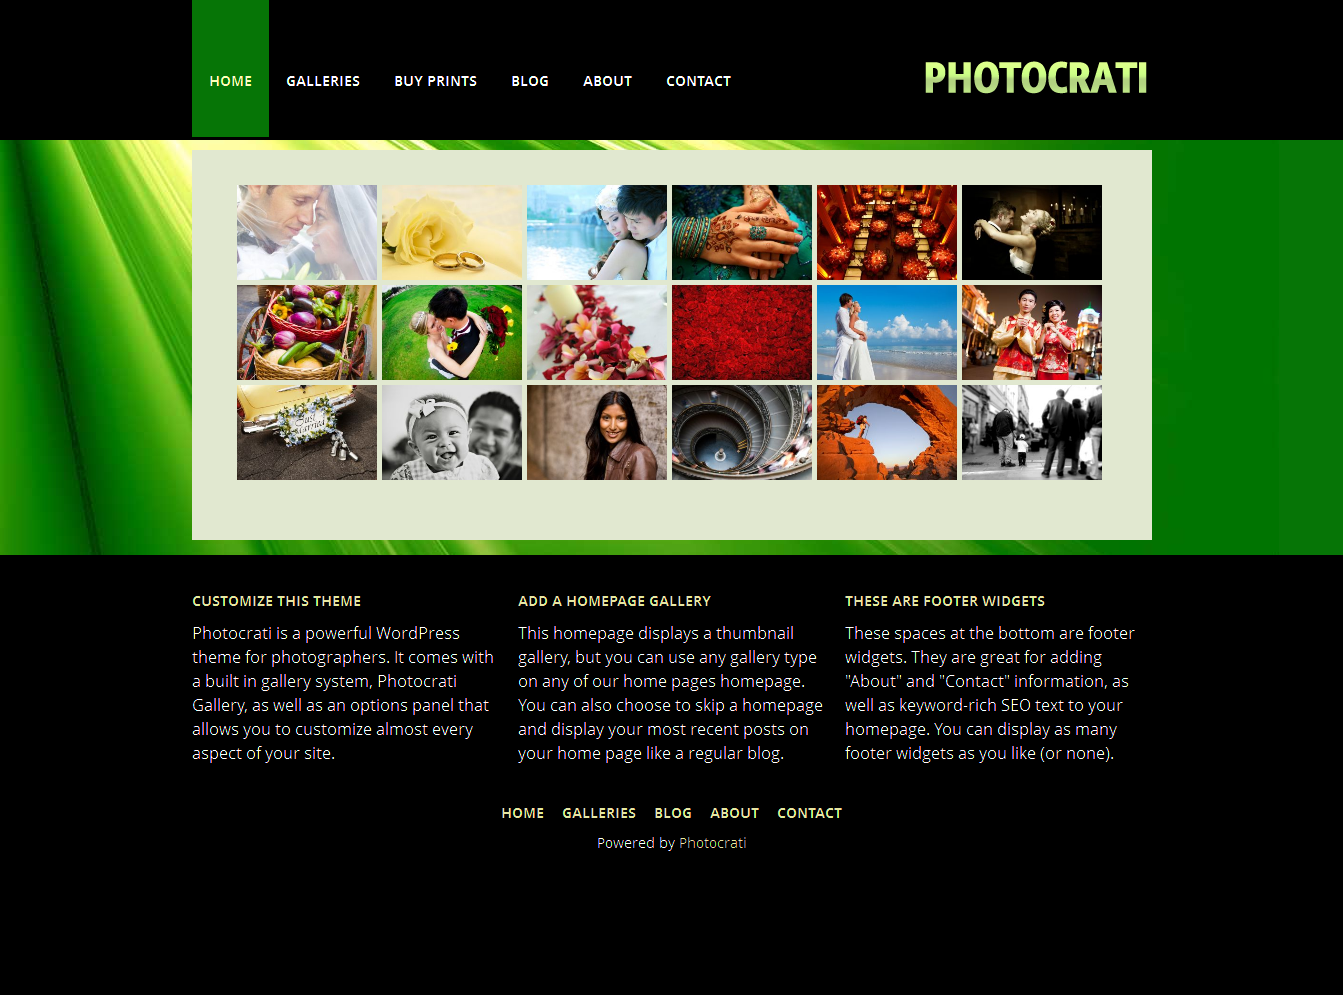 Photocrati Vignette I Photography WordPress Theme - vignette3